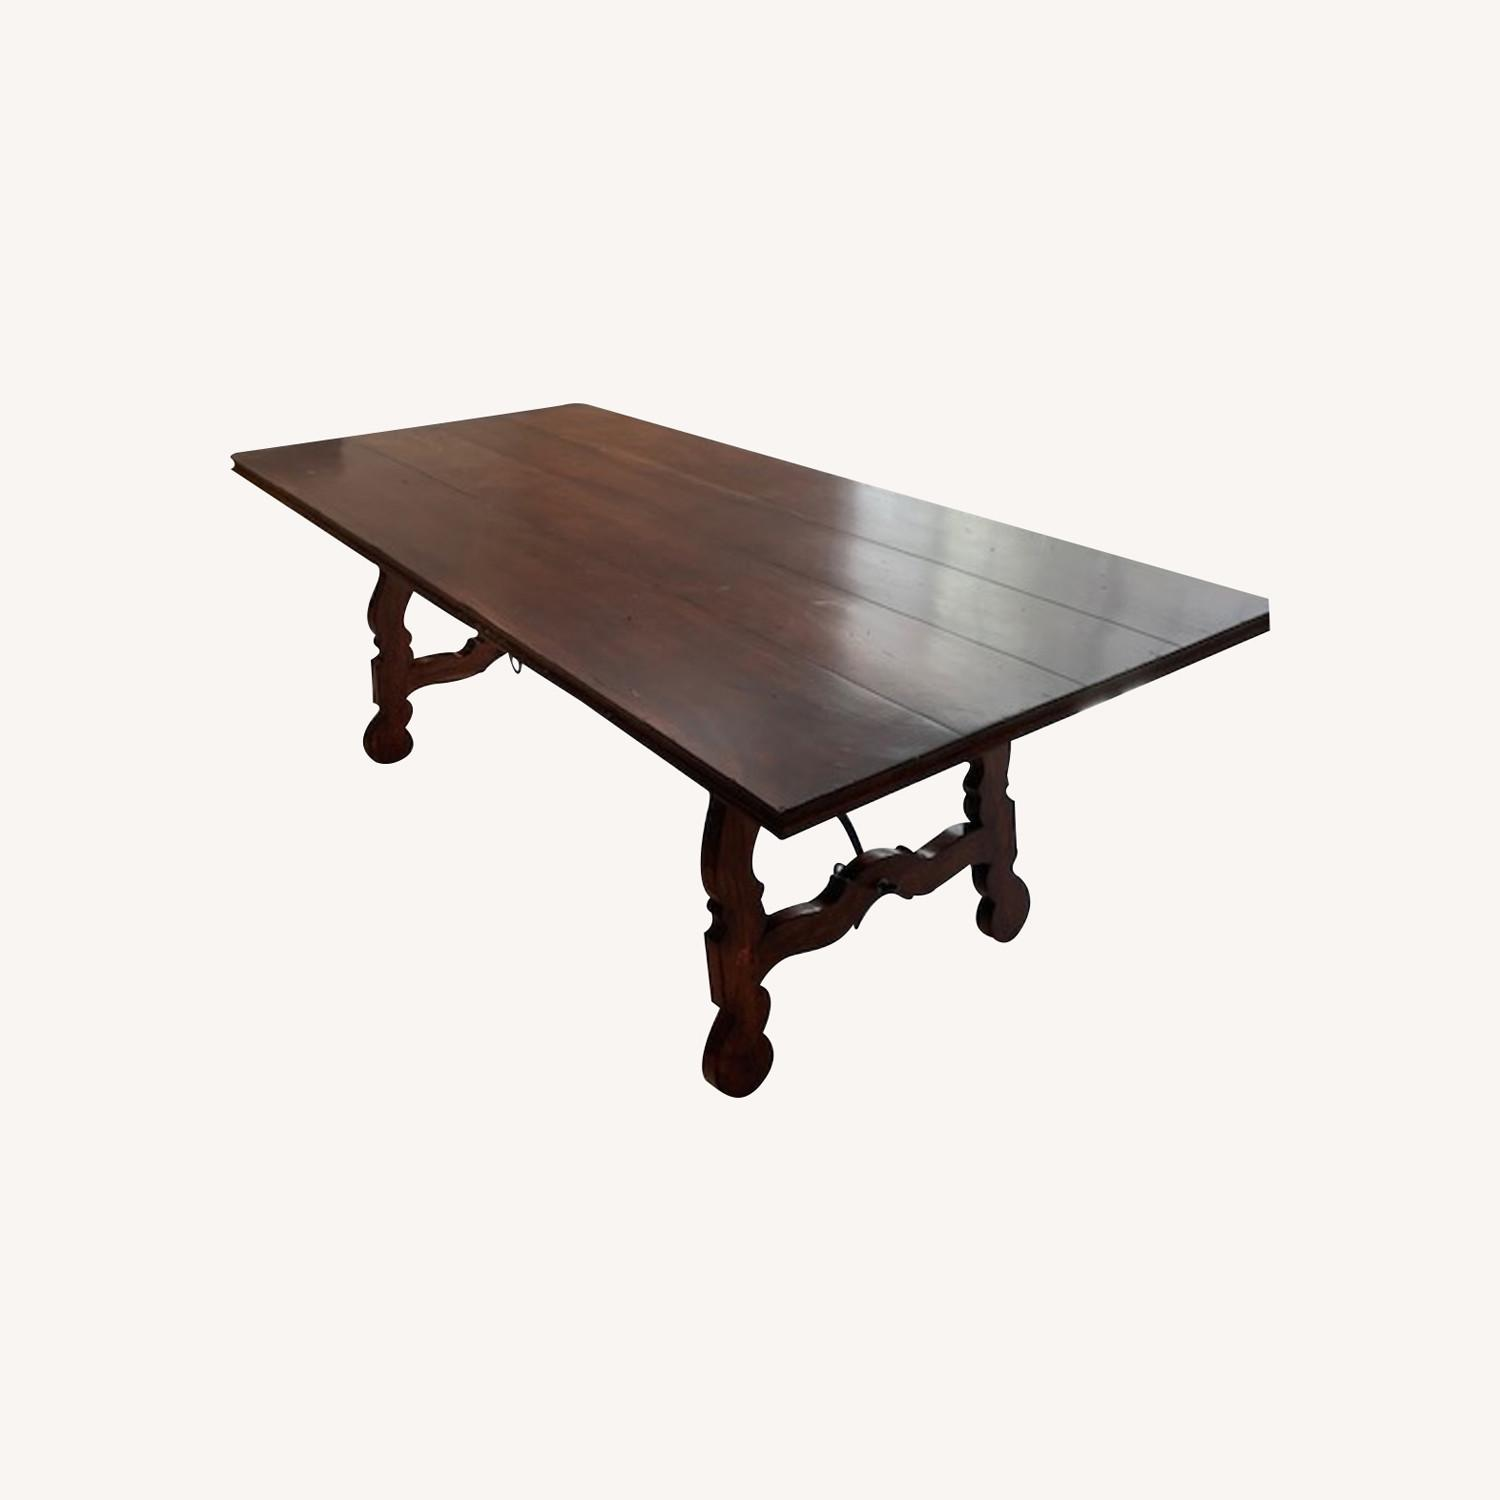 Spanish Style Farm Trestle Table with Forged Steel - image-0